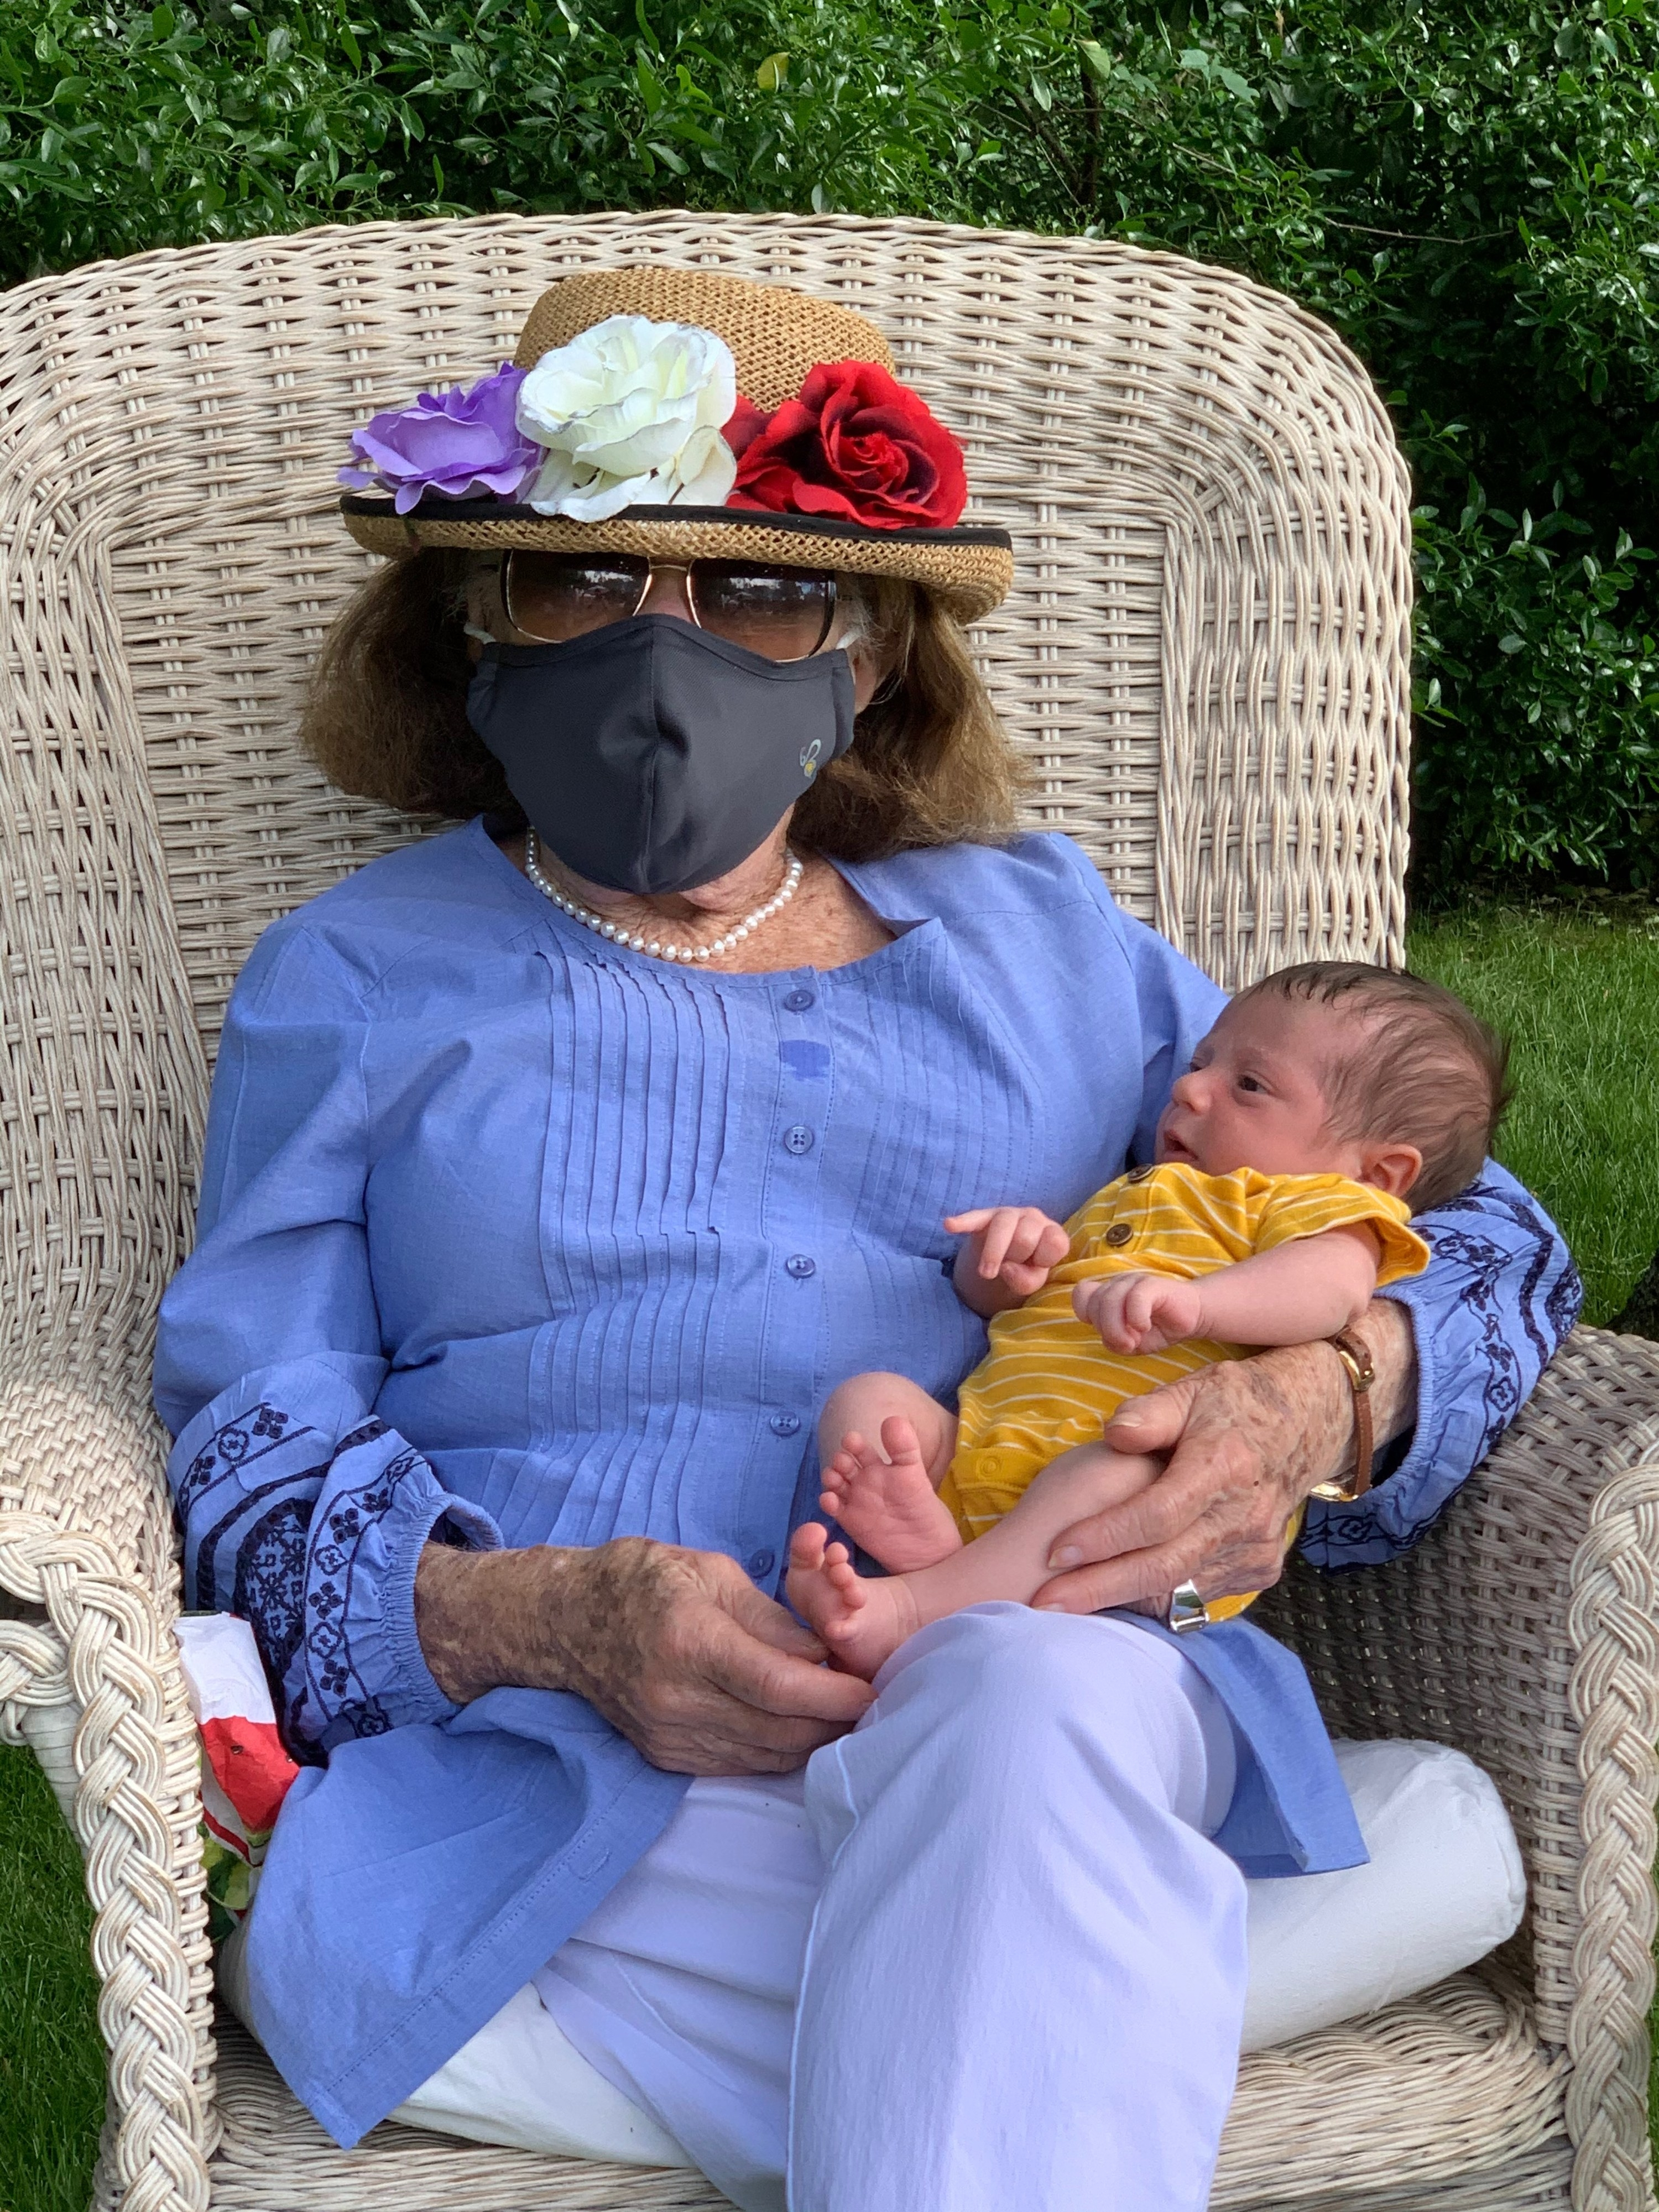 My grandmother holding her great grandson for the first time, wearing a mask!